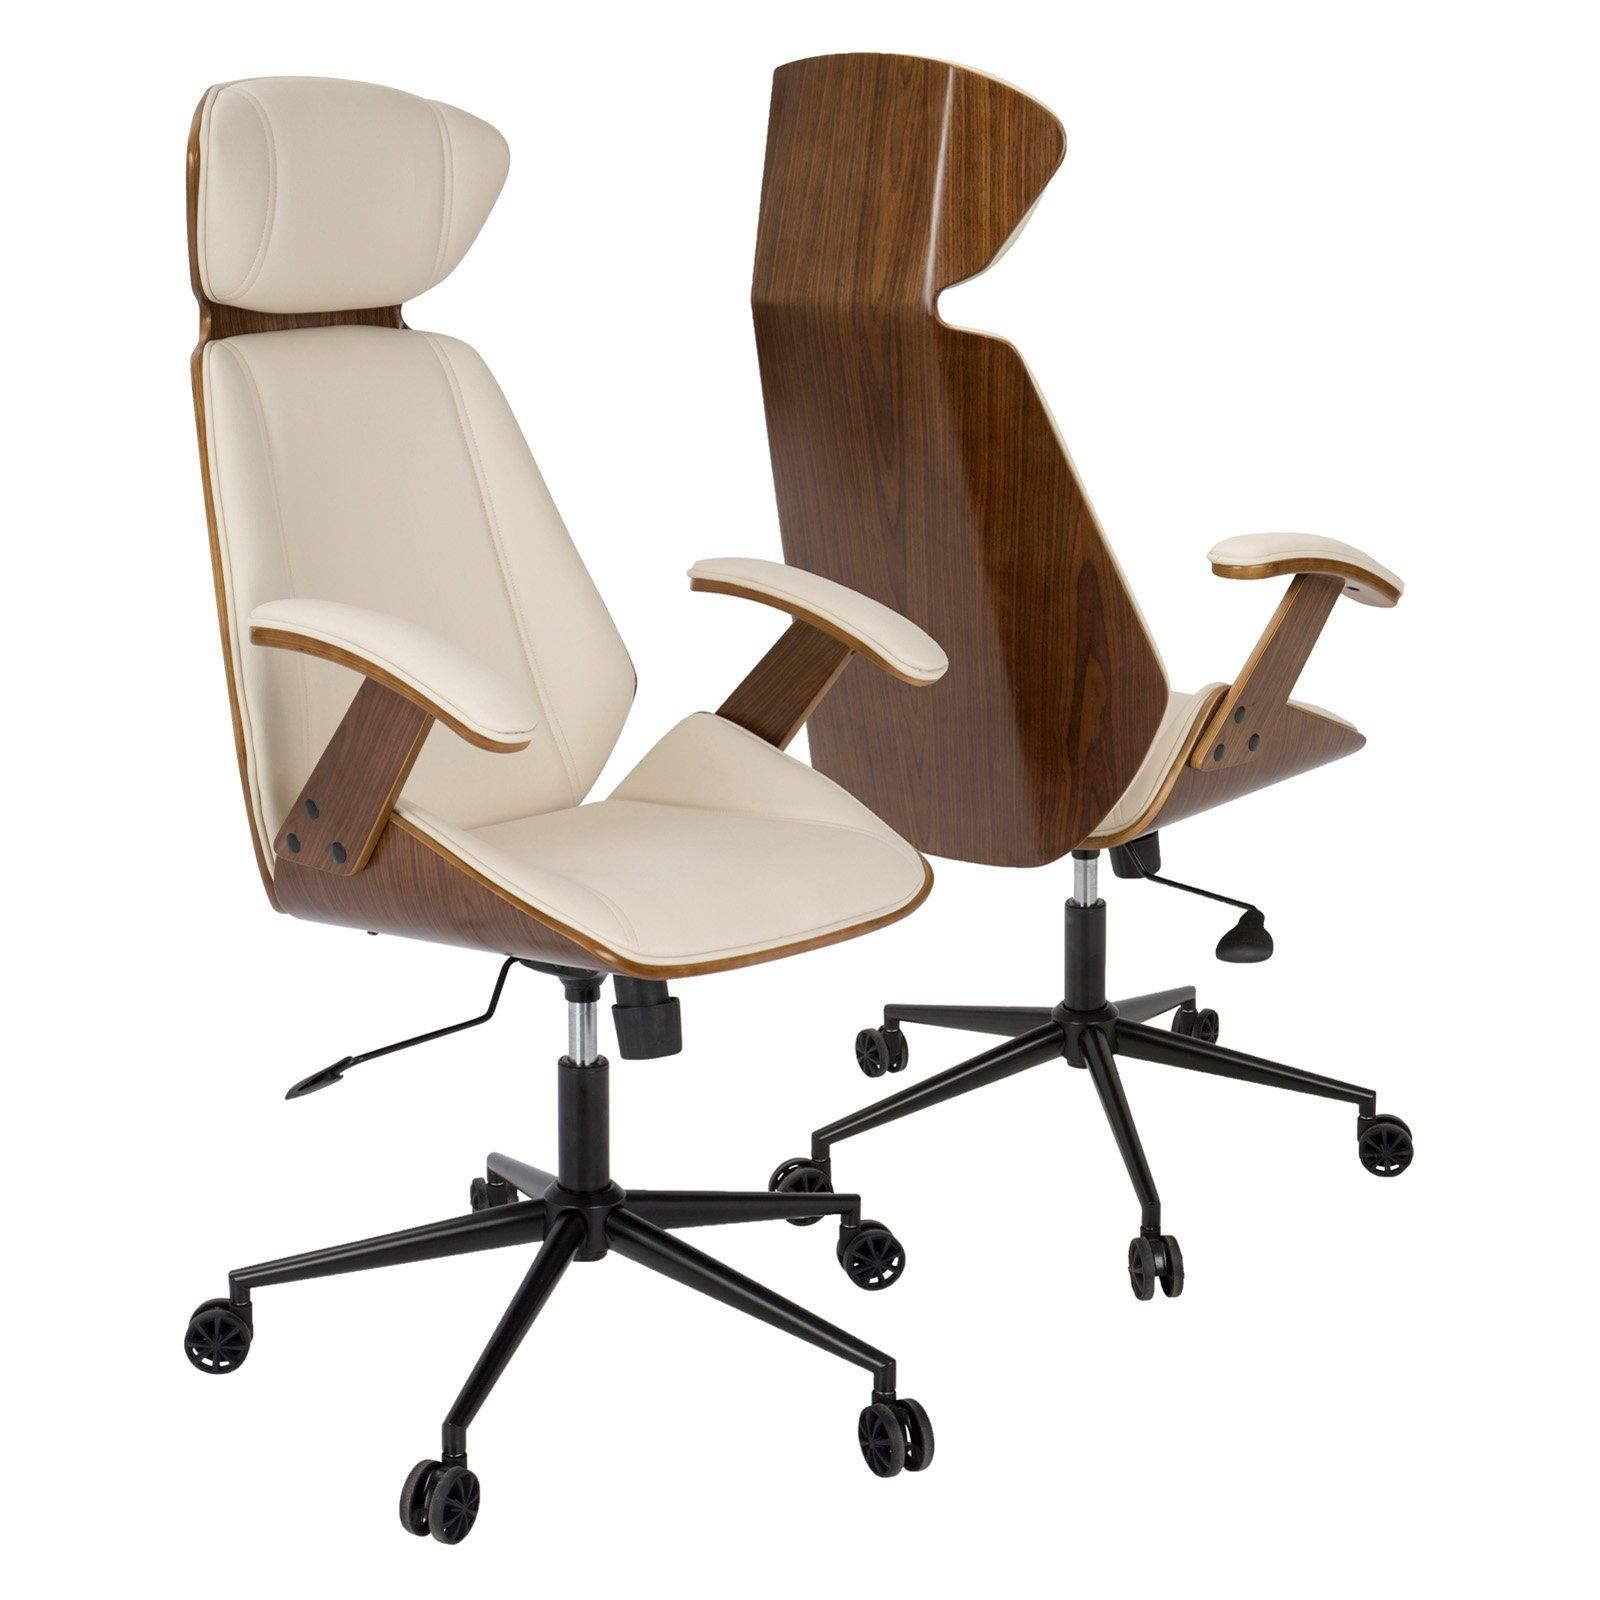 Lumisource Spectre Swivel Office Task Chair Modern Office Chair